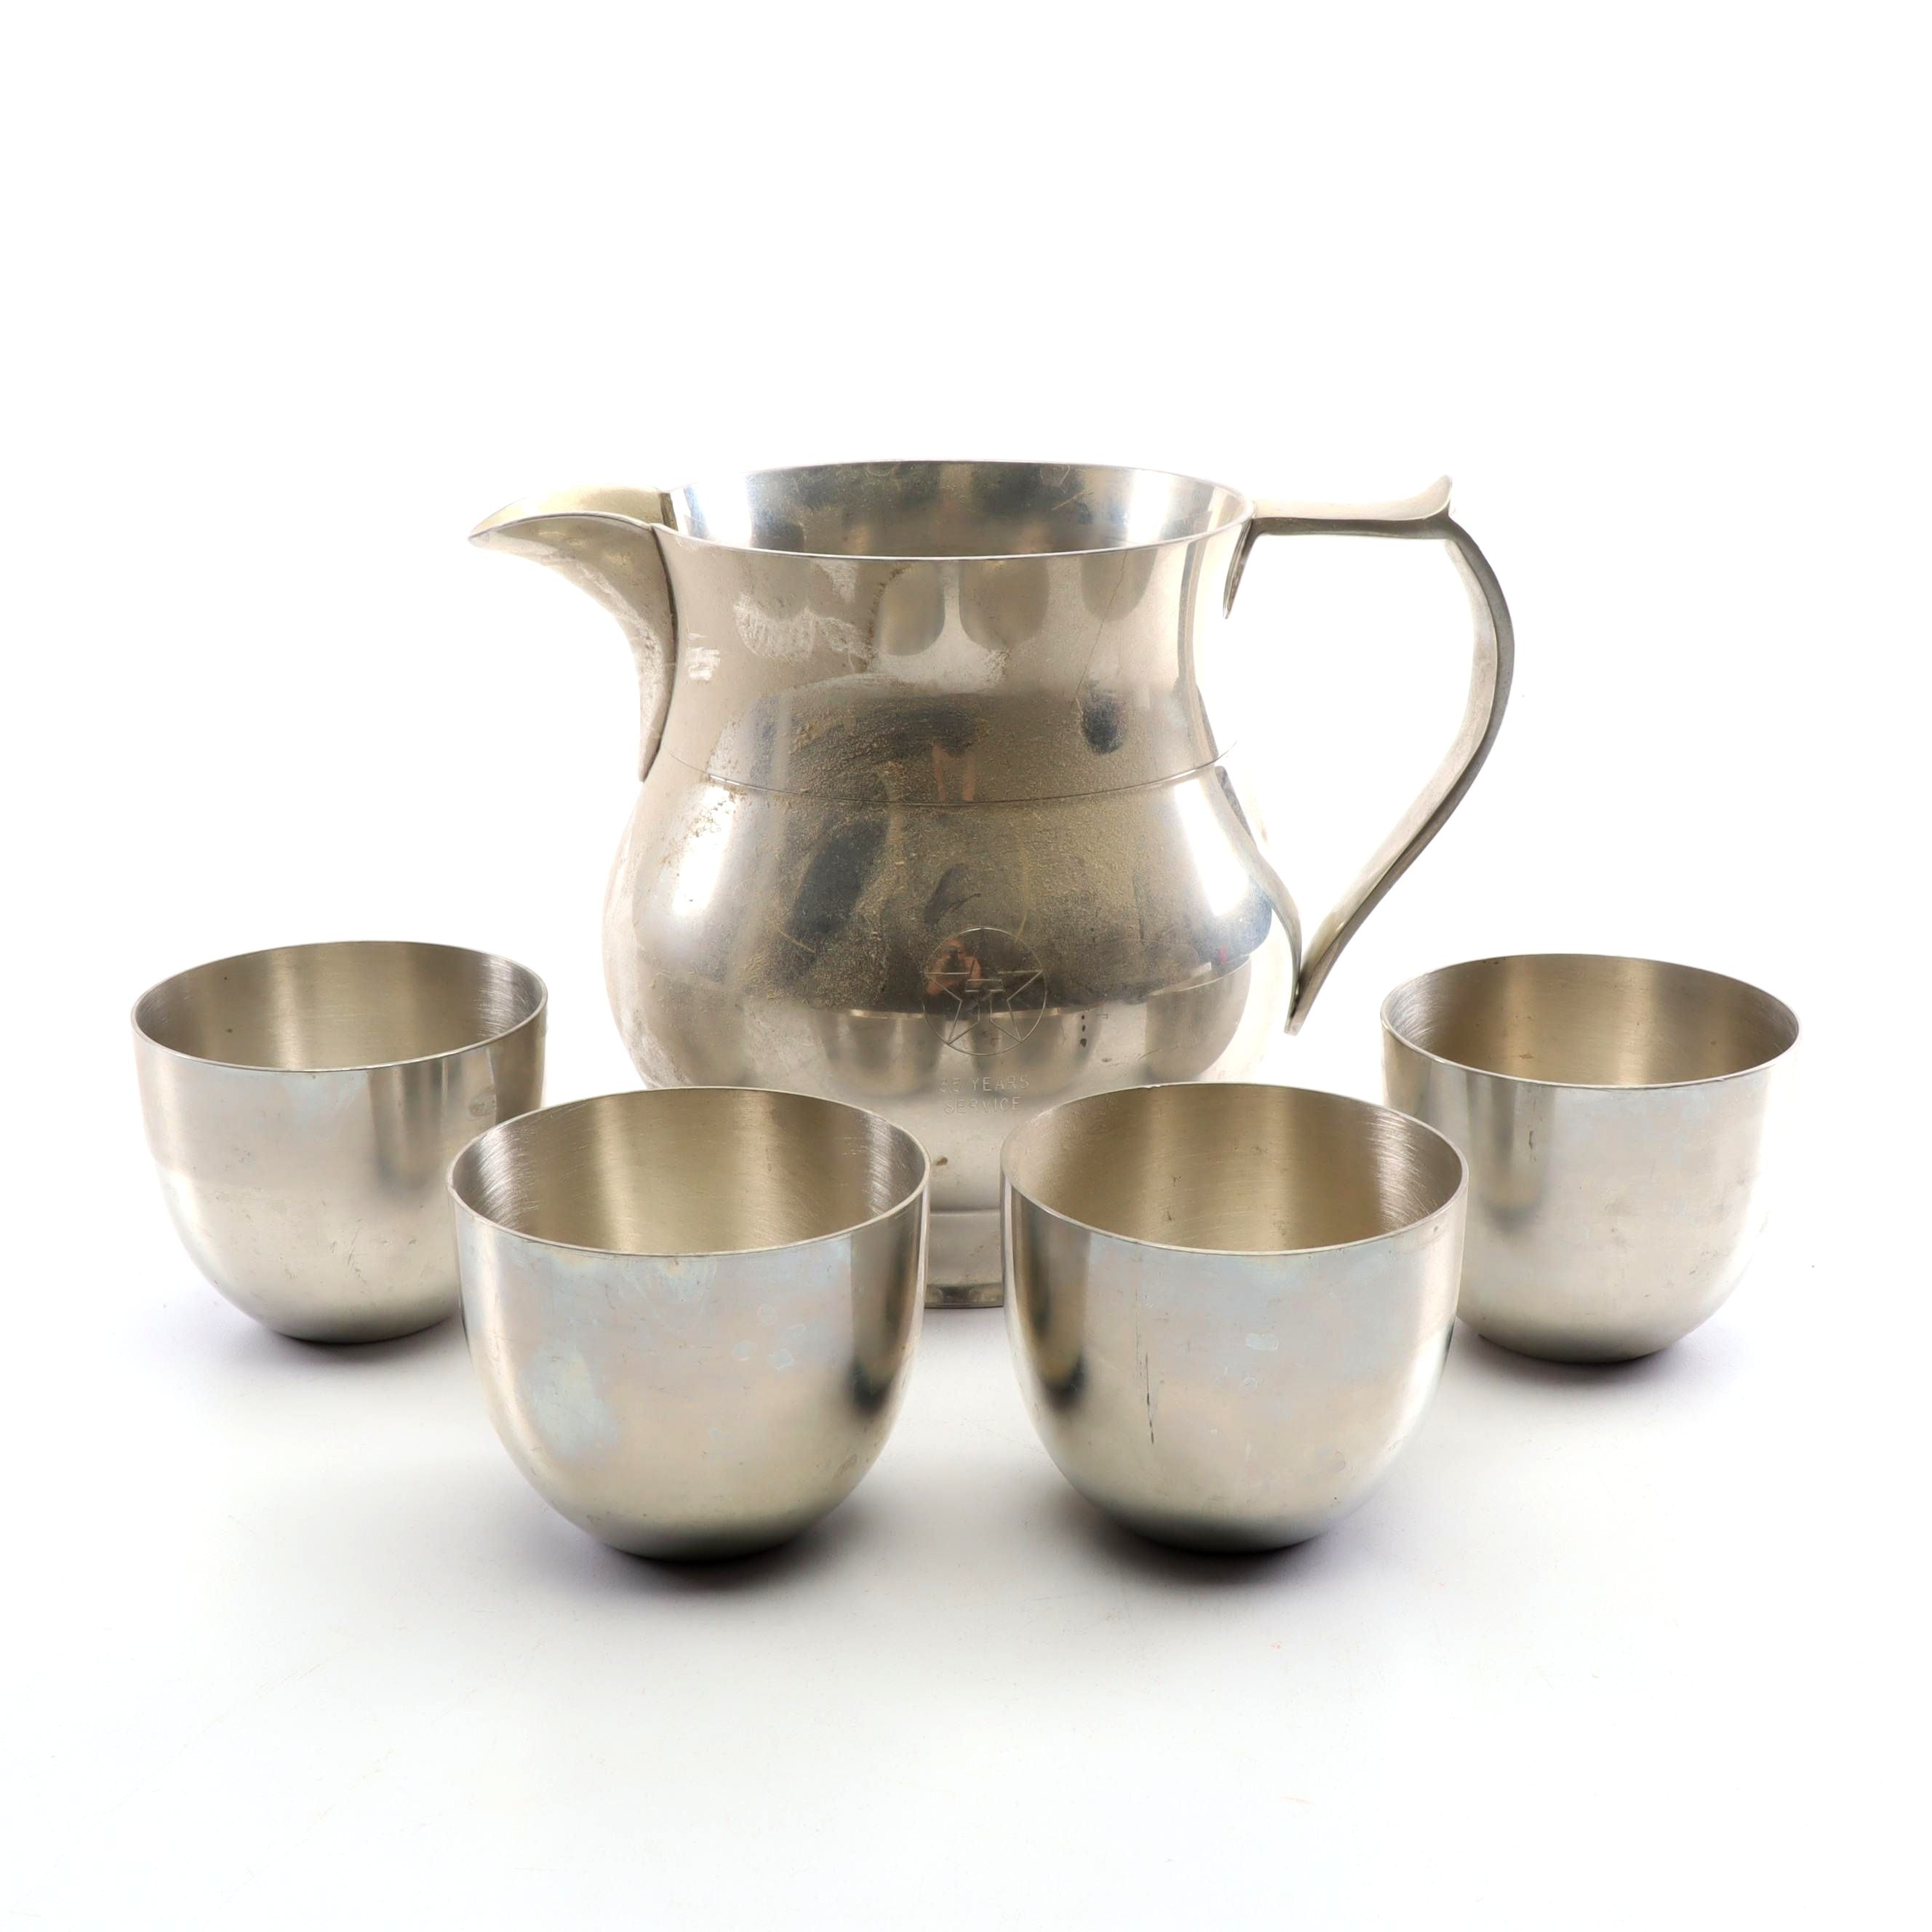 Old Sturbridge Pitcher and Reproduction Pewter Jefferson Cups